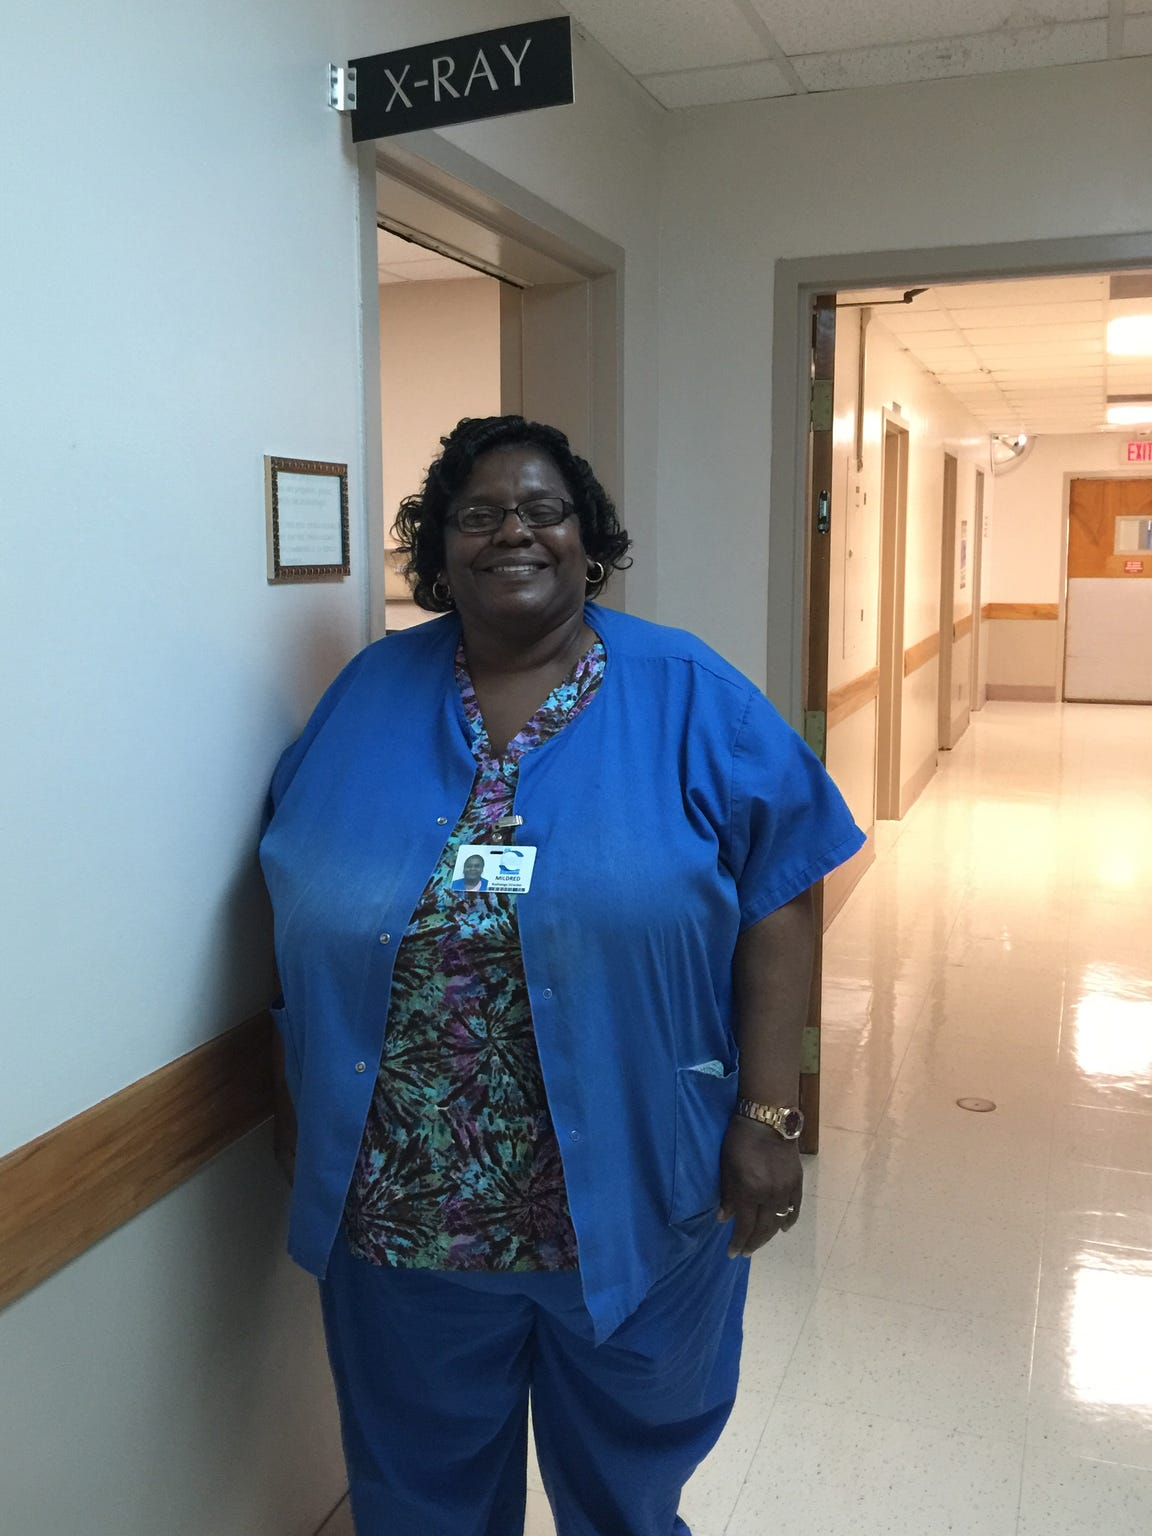 Mildred Battle, Calhoun Liberty Hospital's radiology director, outside the facility's X-ray room.